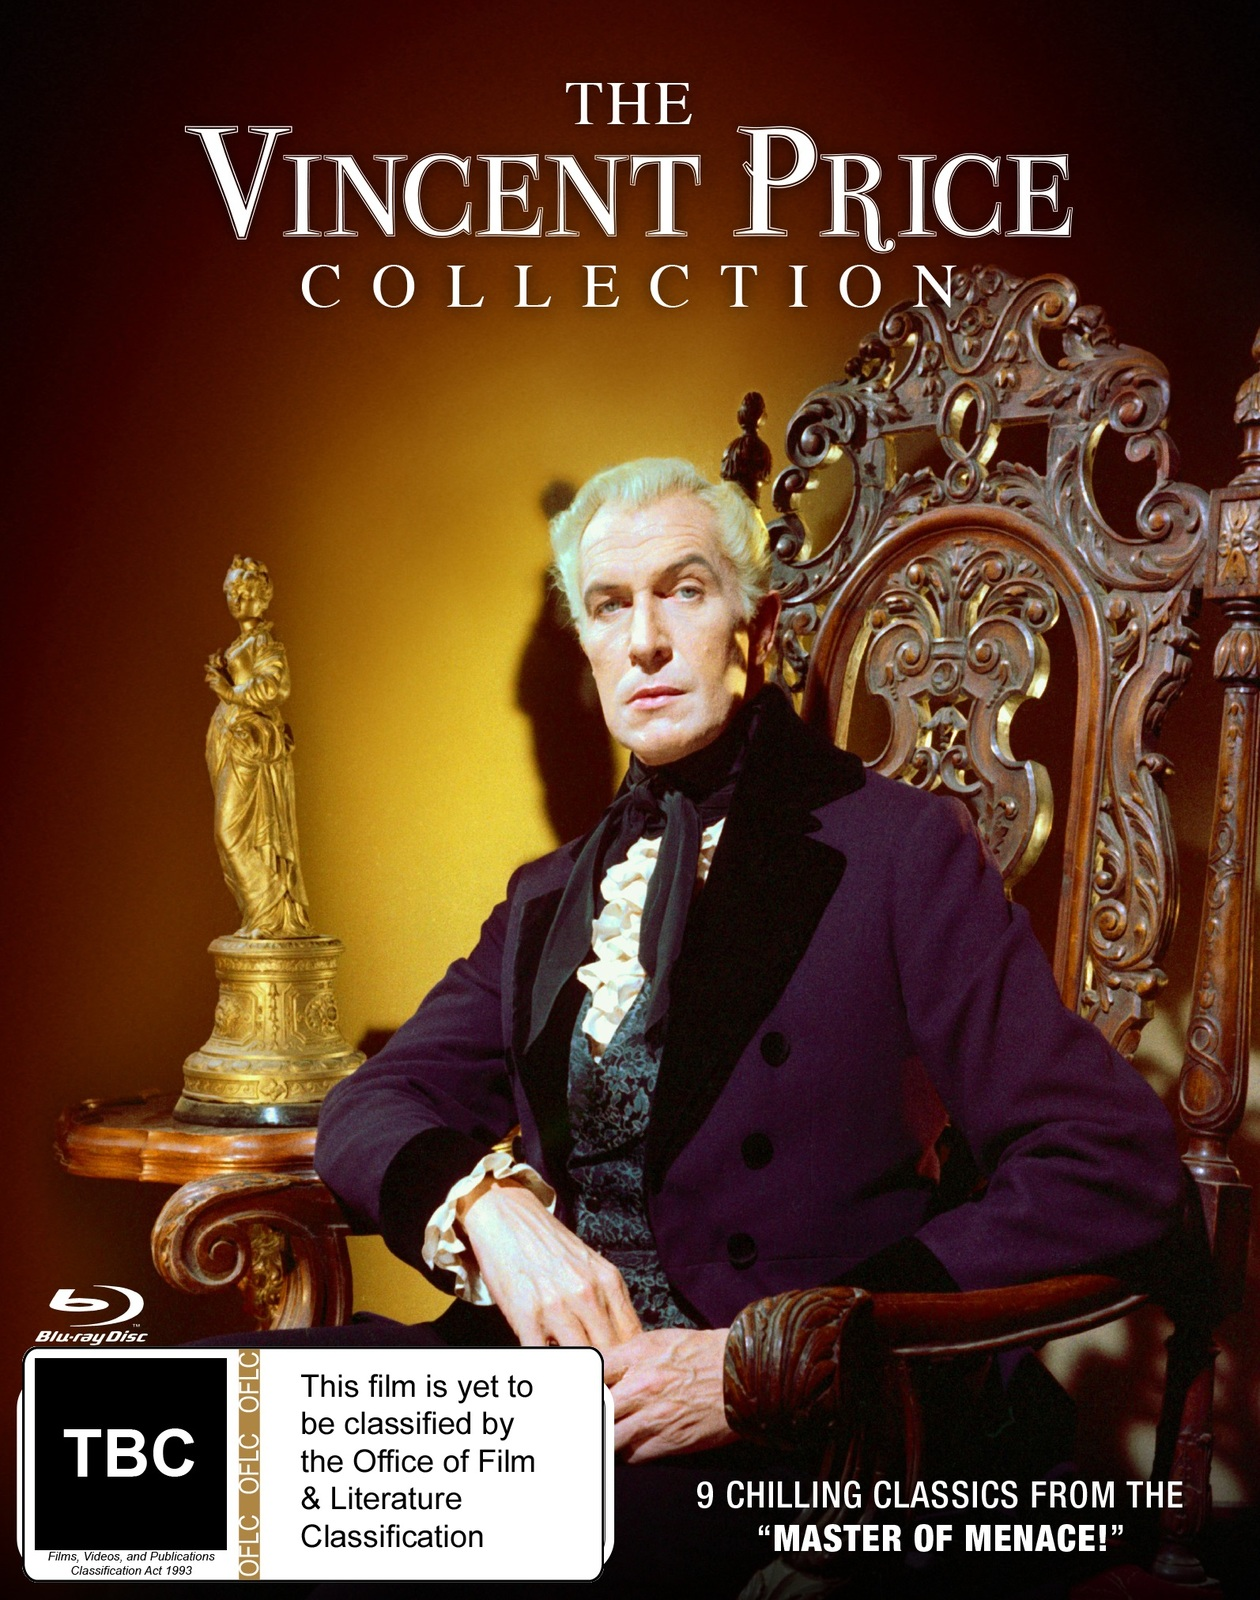 Vincent Price Collection on Blu-ray image